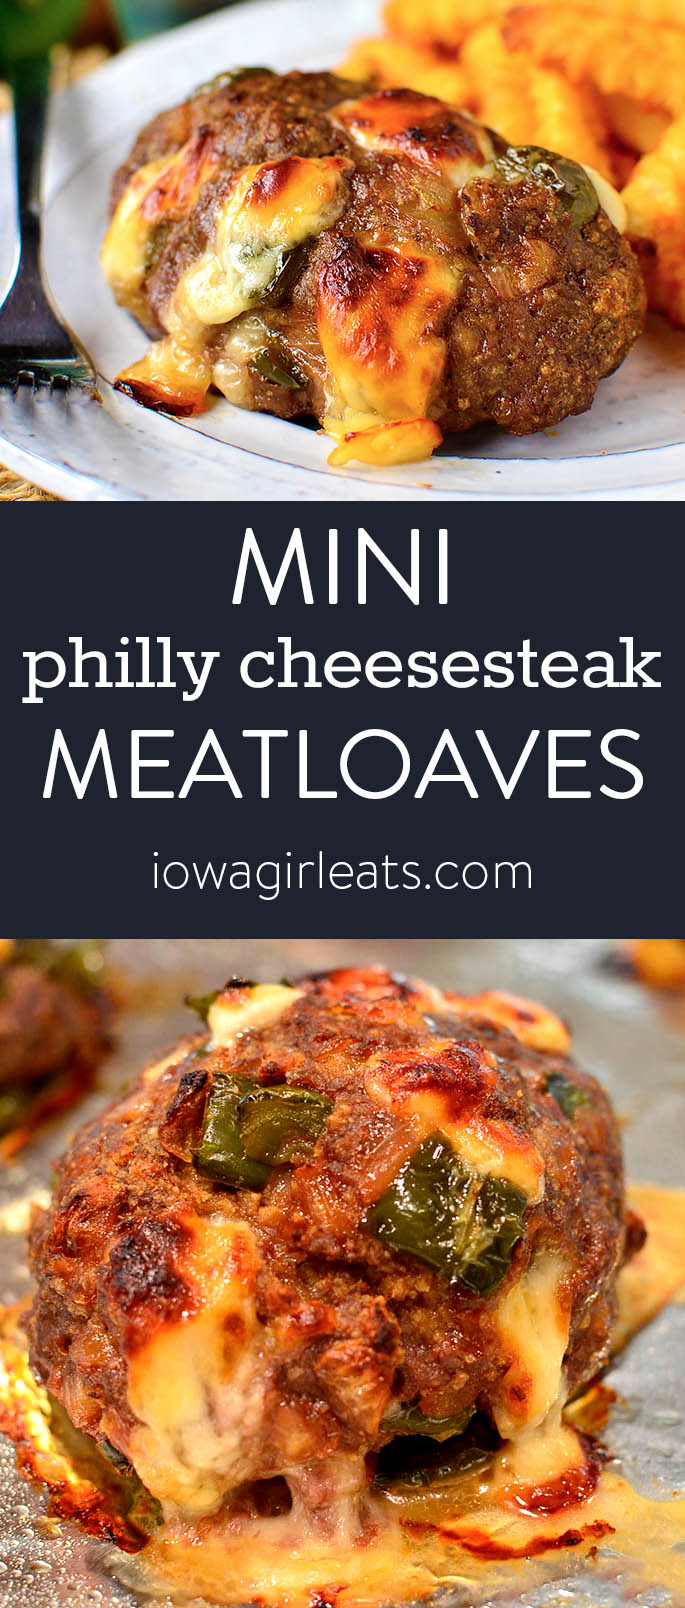 Photo collage of philly cheesesteak meatloaves